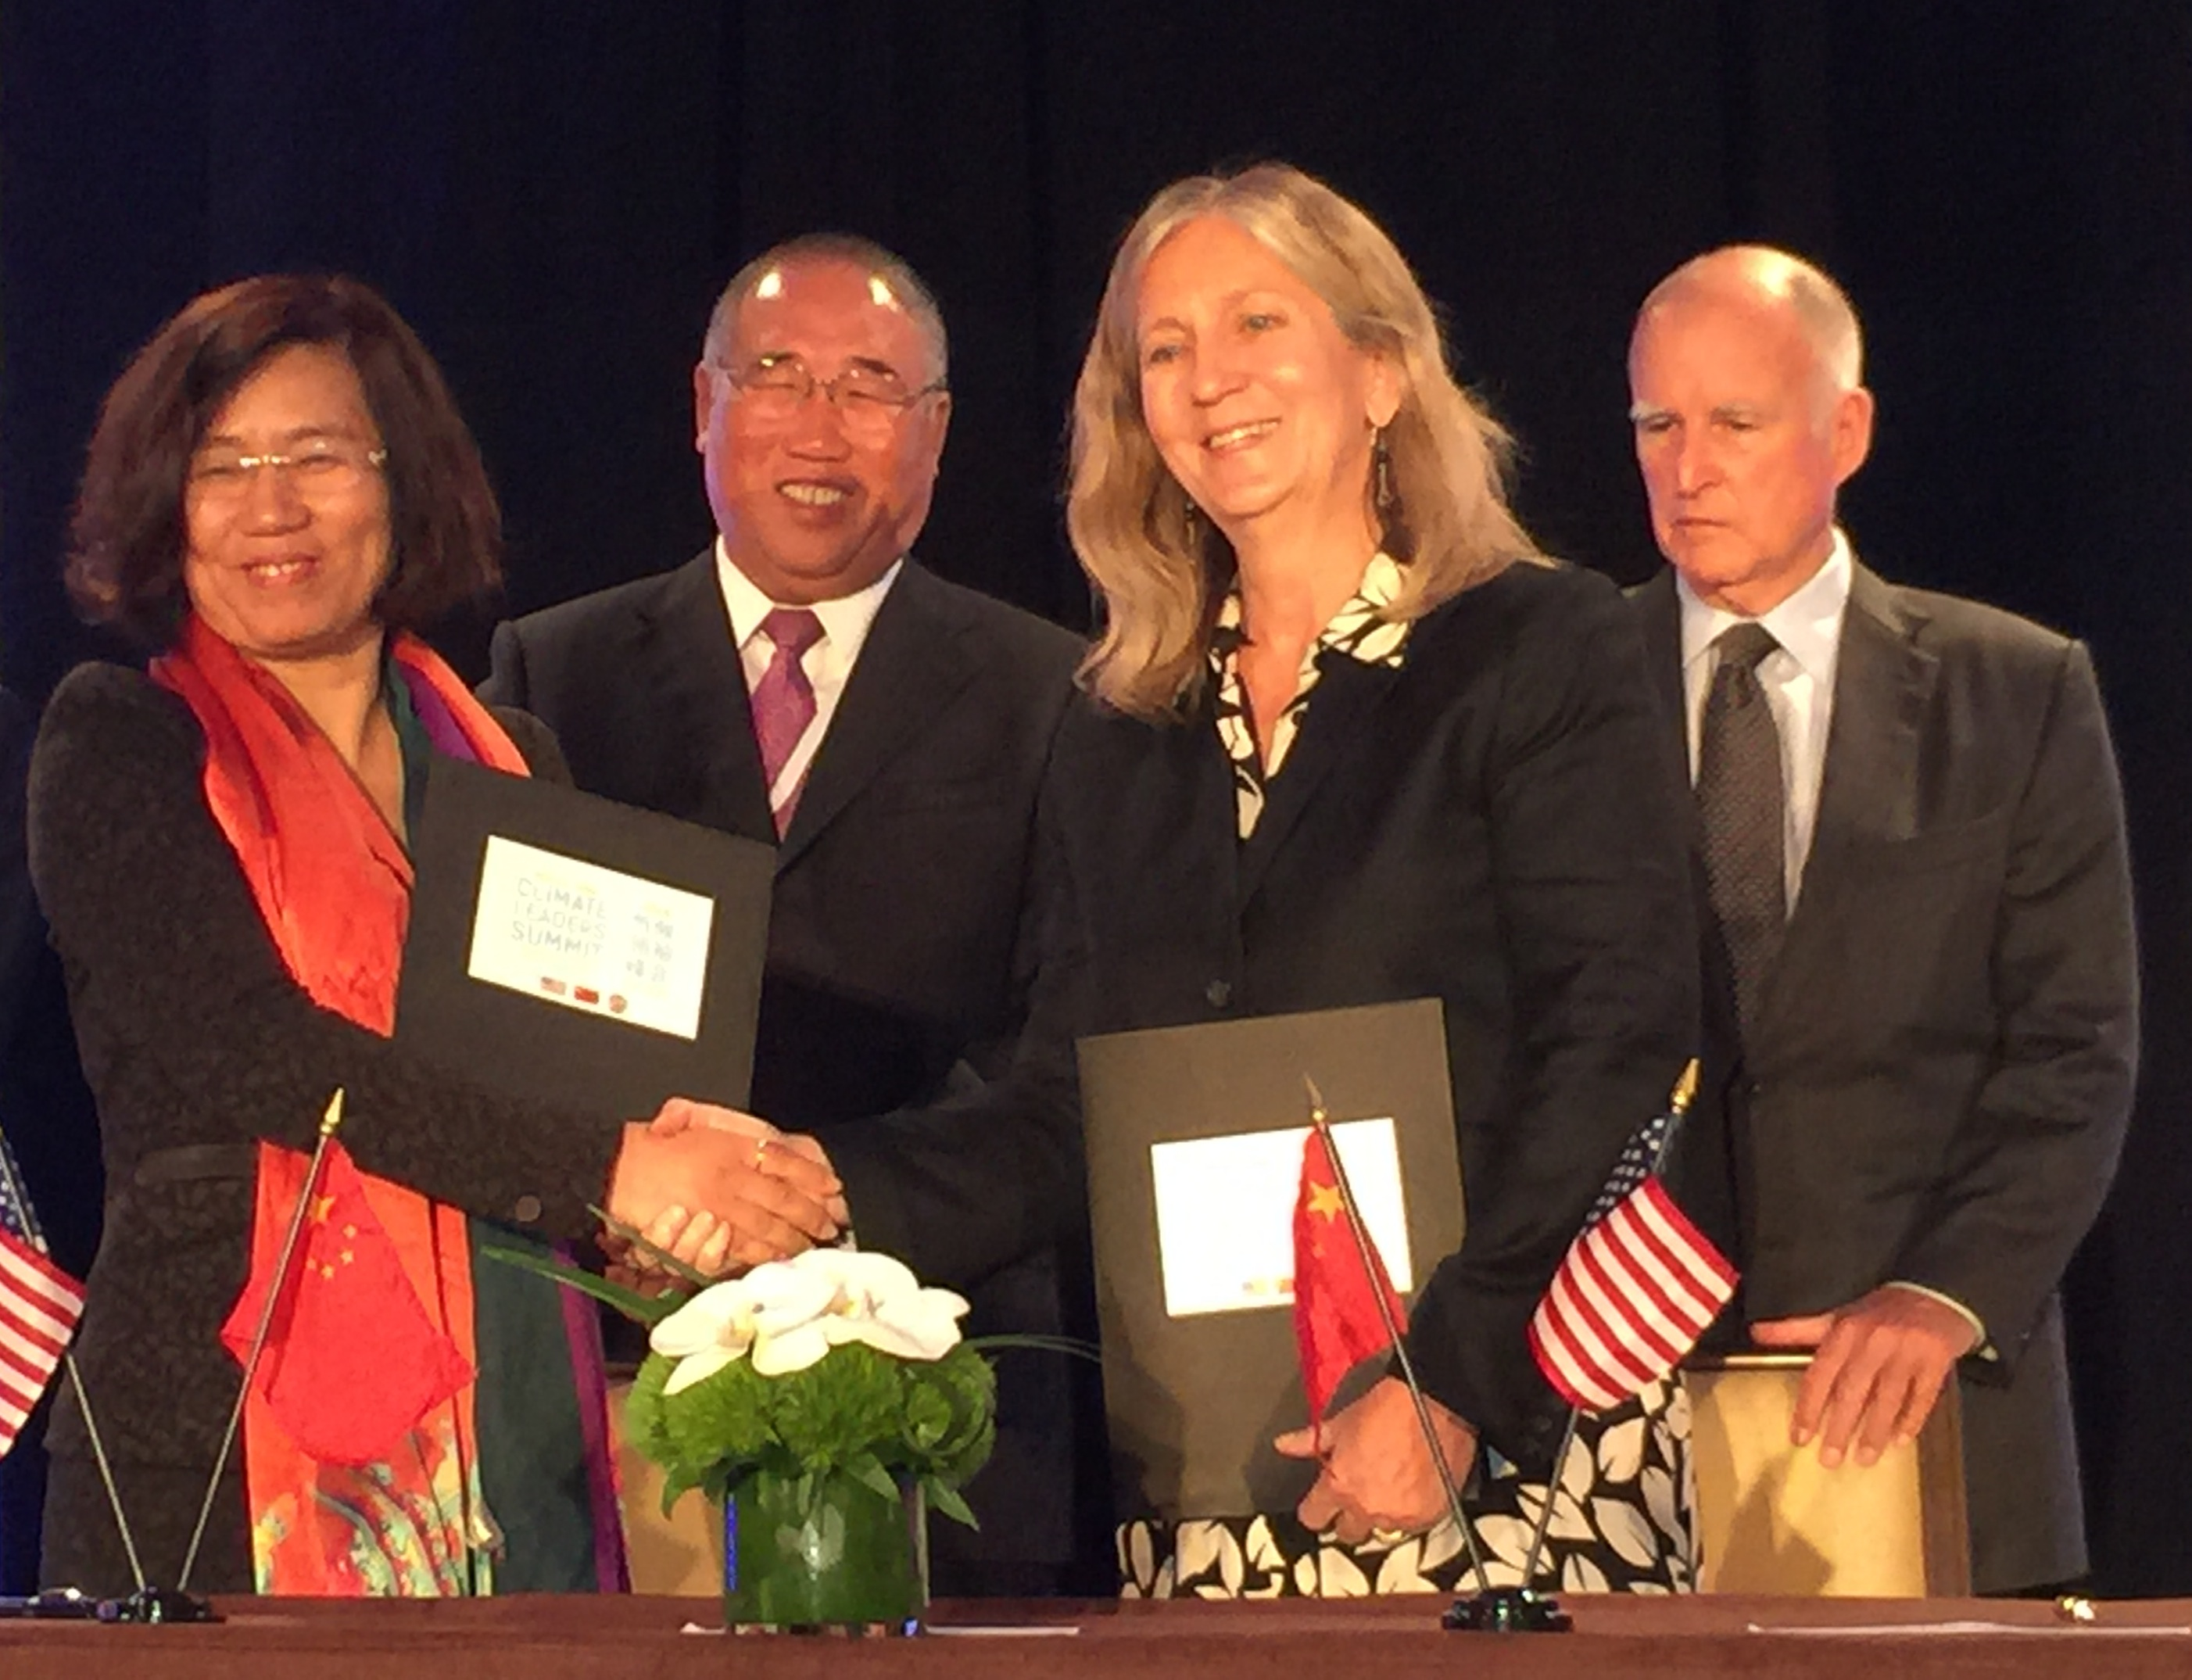 California Gov. Jerry Brown, China Energy Group leader Lynn Price, and members o